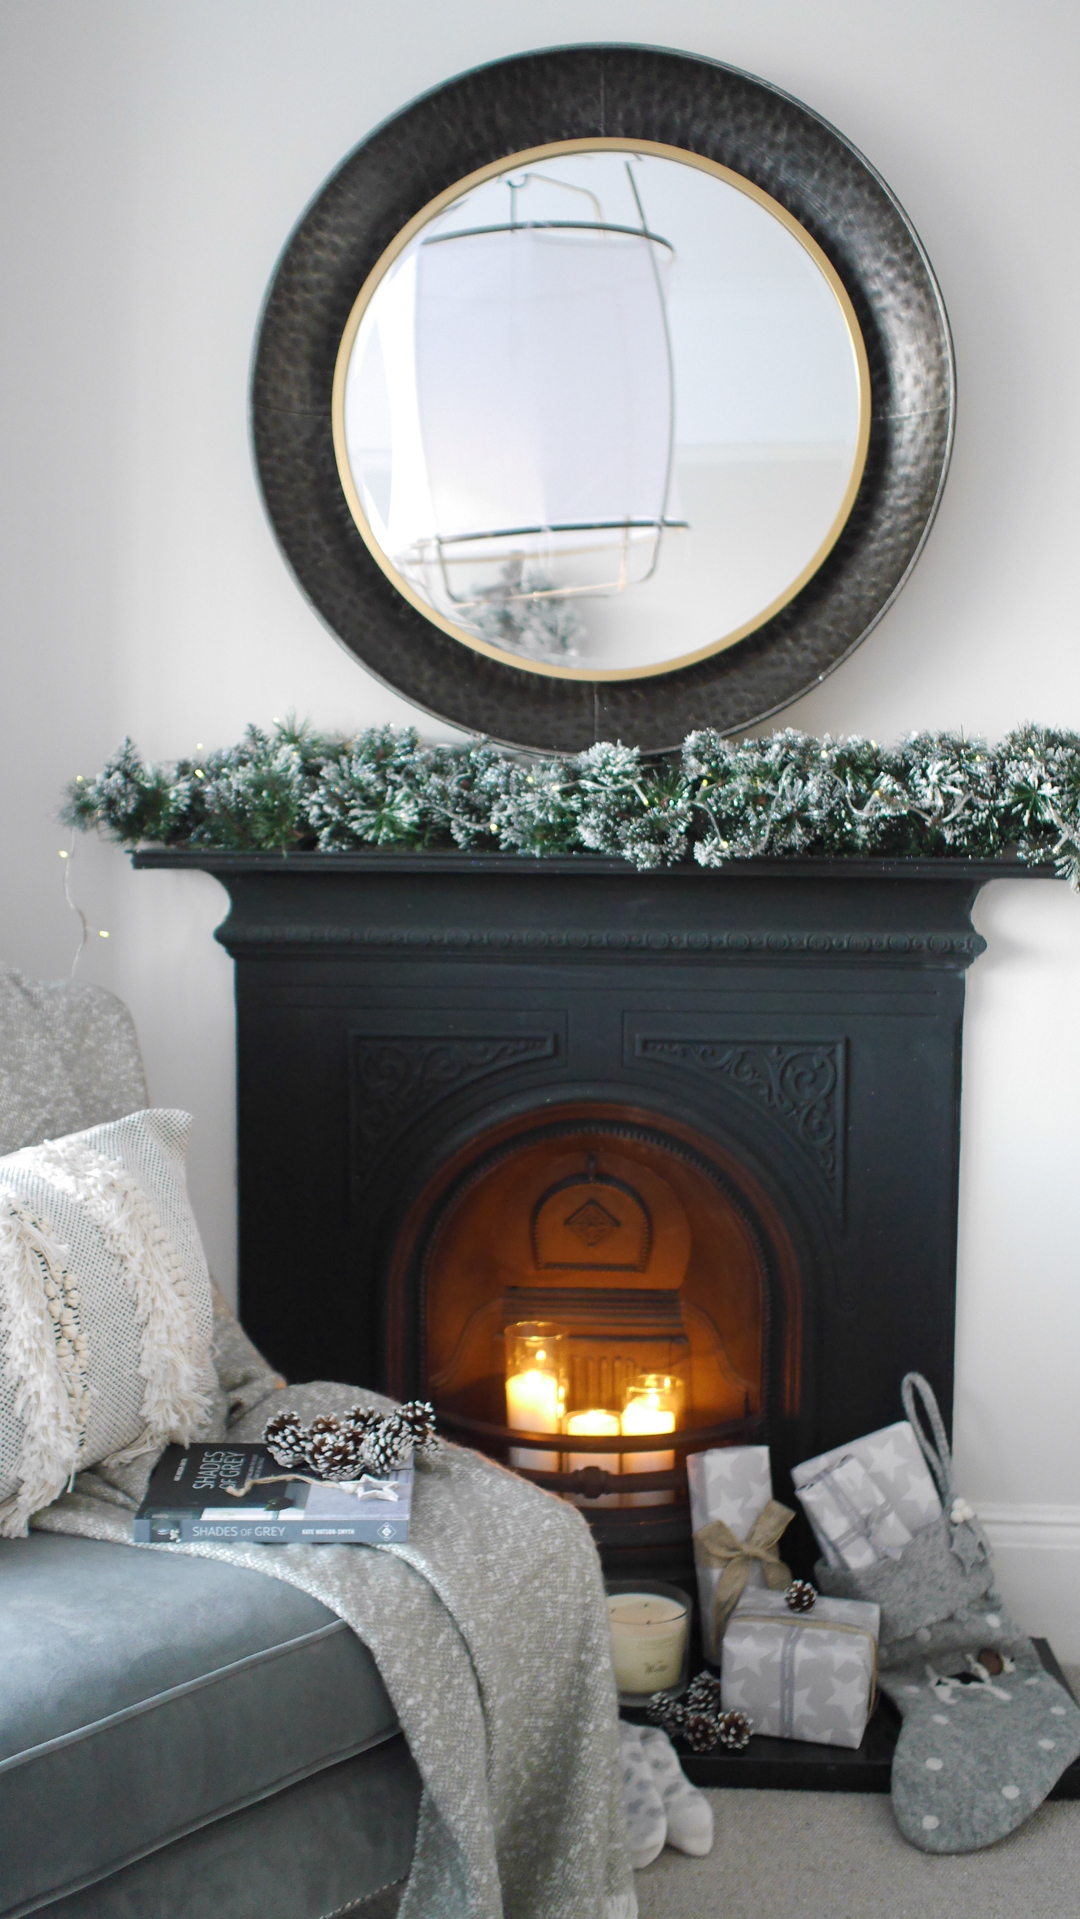 Christmas decorations - a festive bedroom